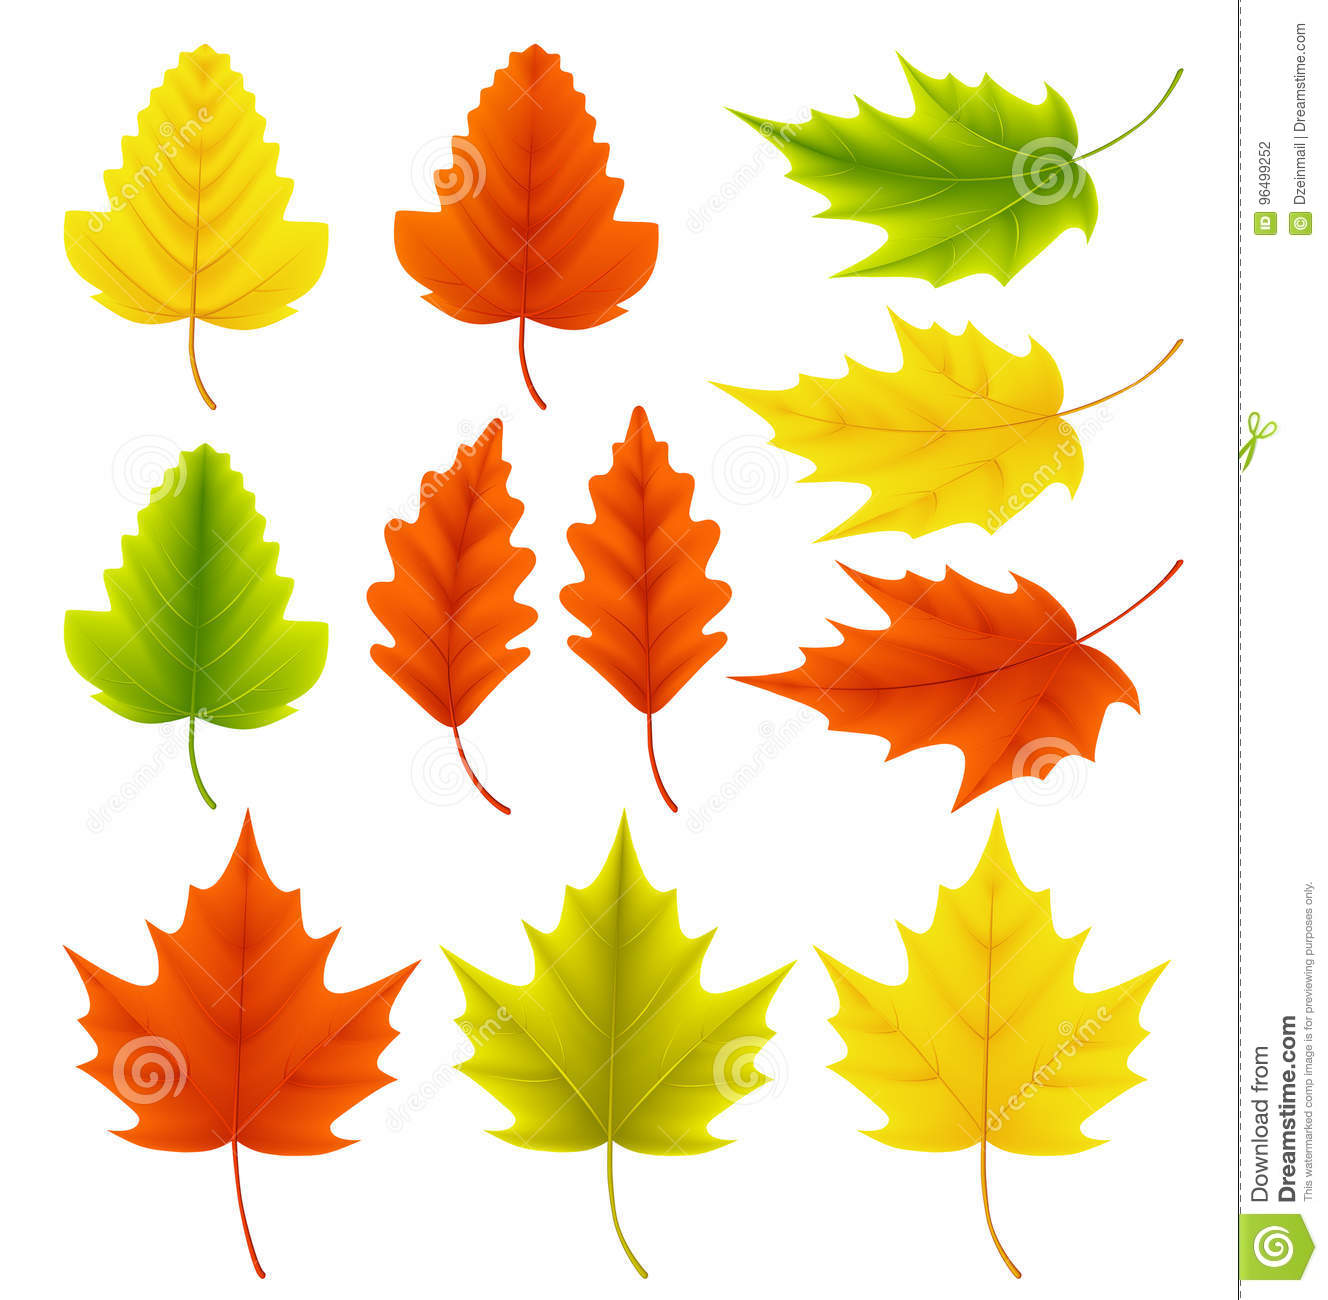 Fall leaves vector collection. Set of autumn leaves like maple and oak